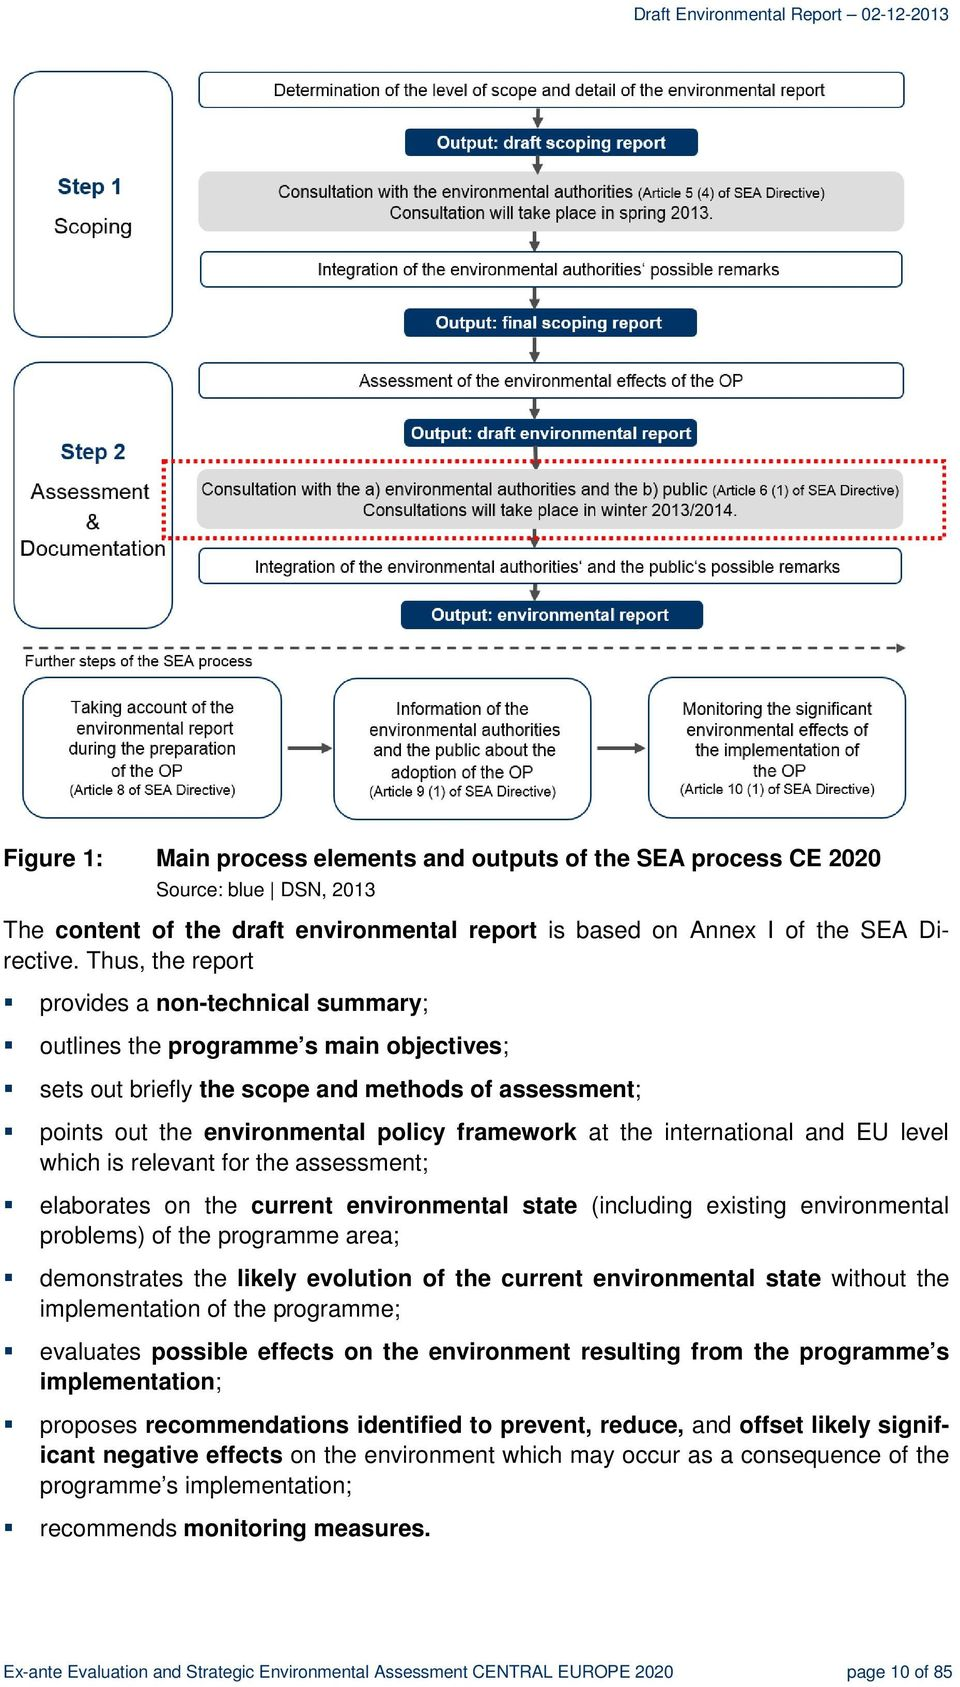 international and EU level which is relevant for the assessment; elaborates on the current environmental state (including existing environmental problems) of the programme area; demonstrates the